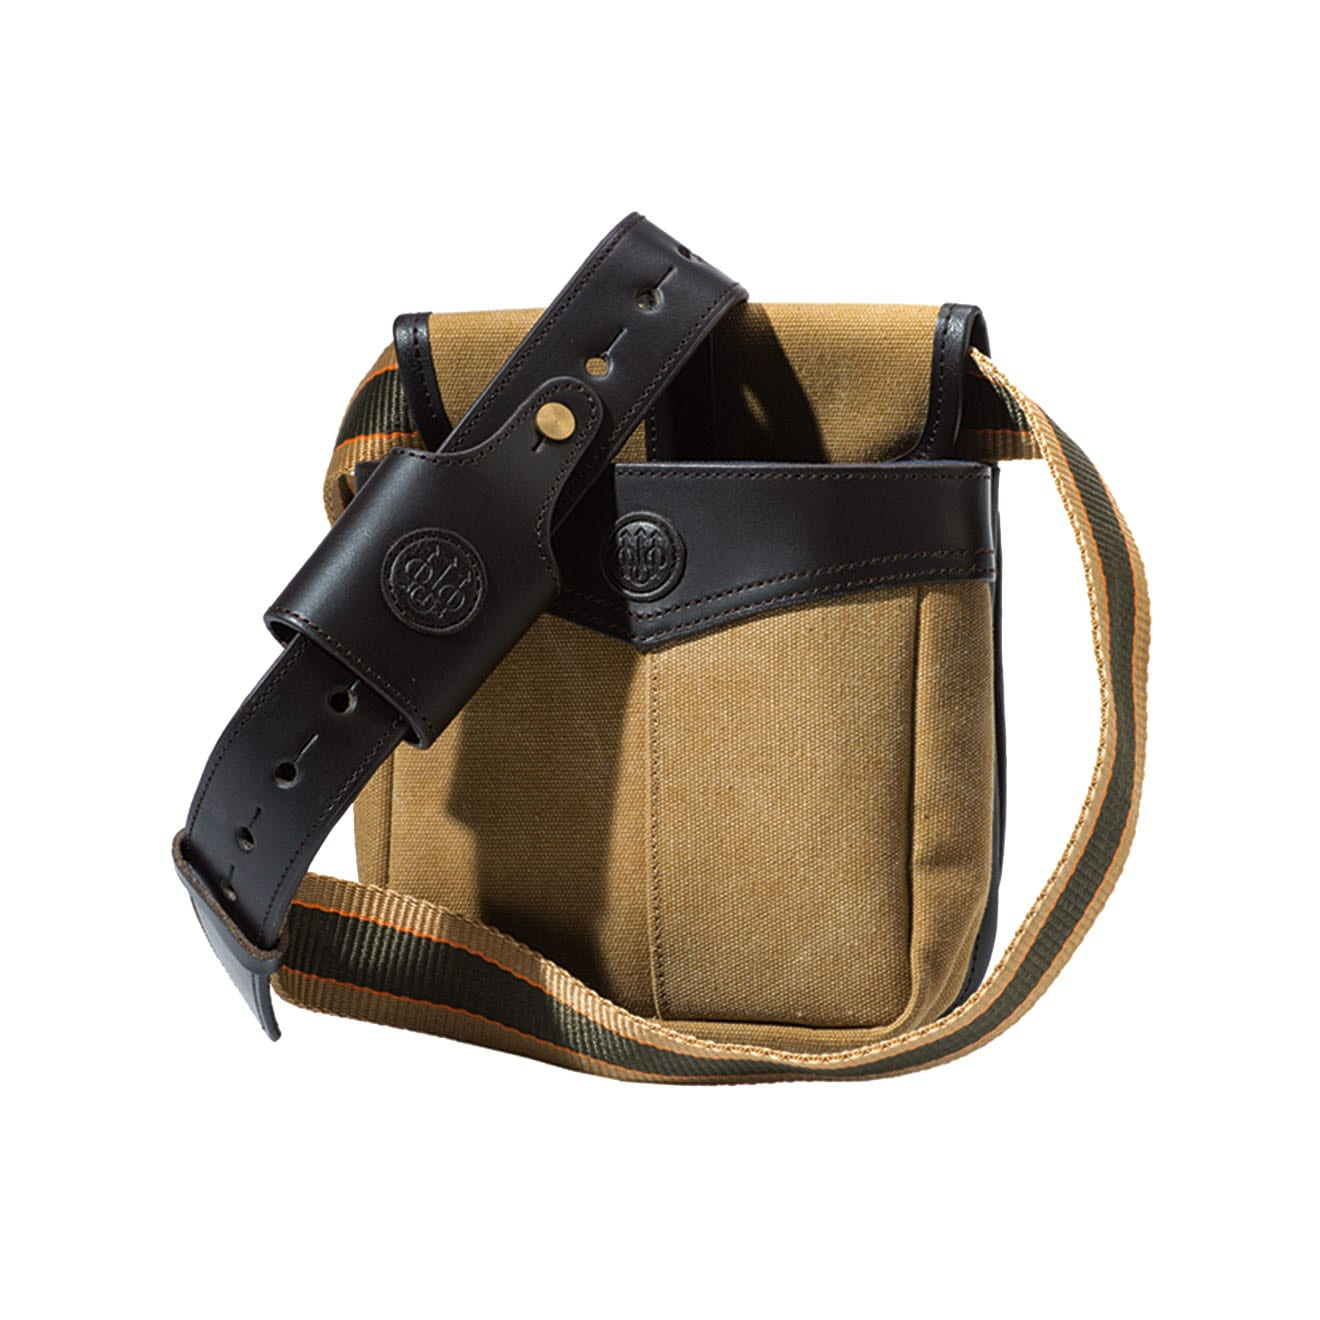 Beretta Terrain Hull Pouch 50 Cartridges